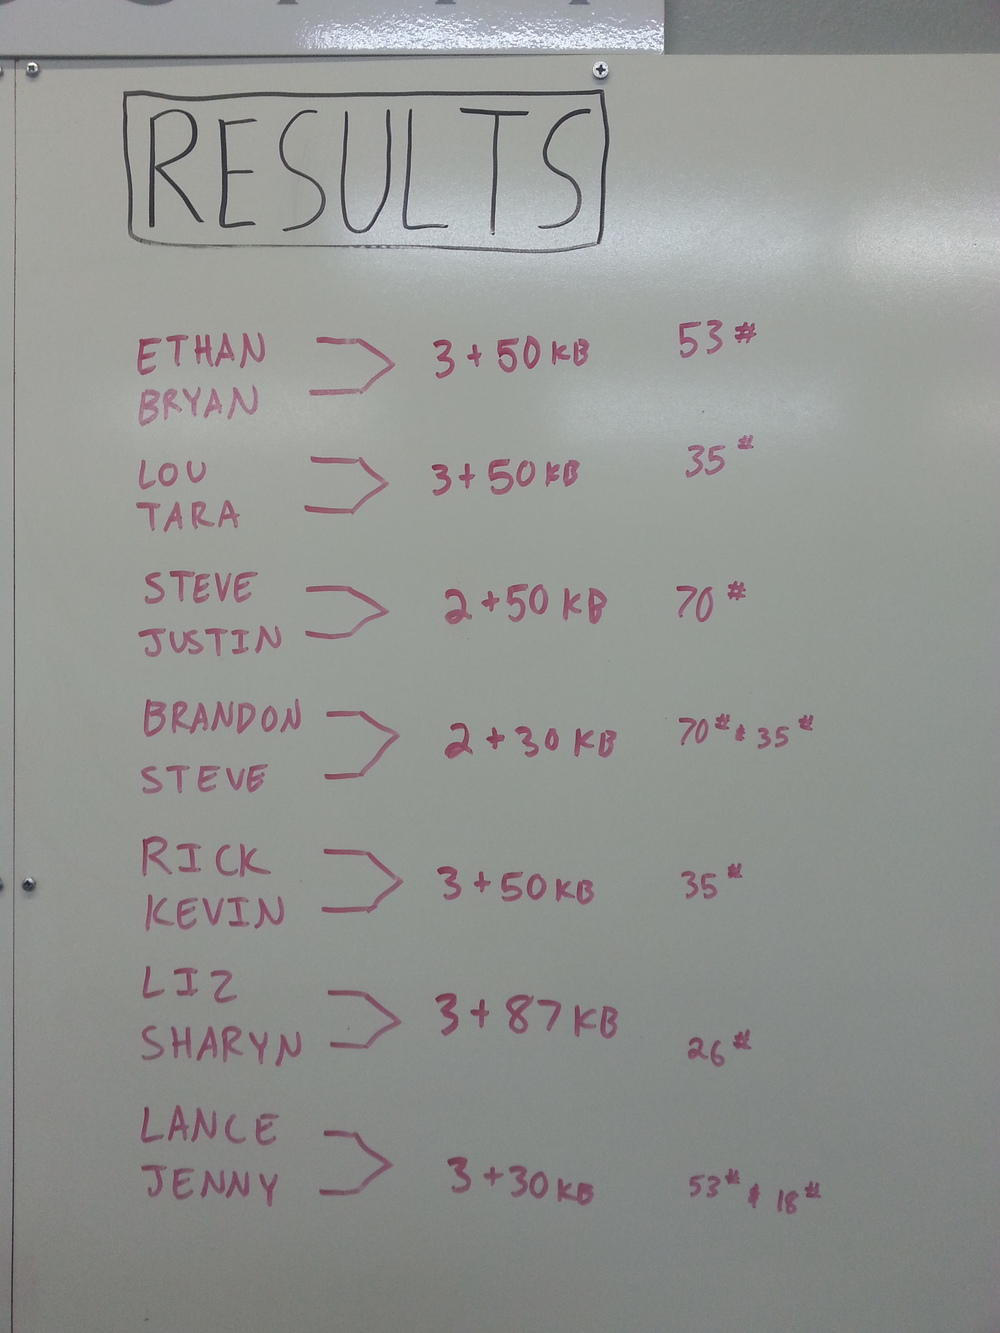 Results from 9/2 Labor Day WOD!